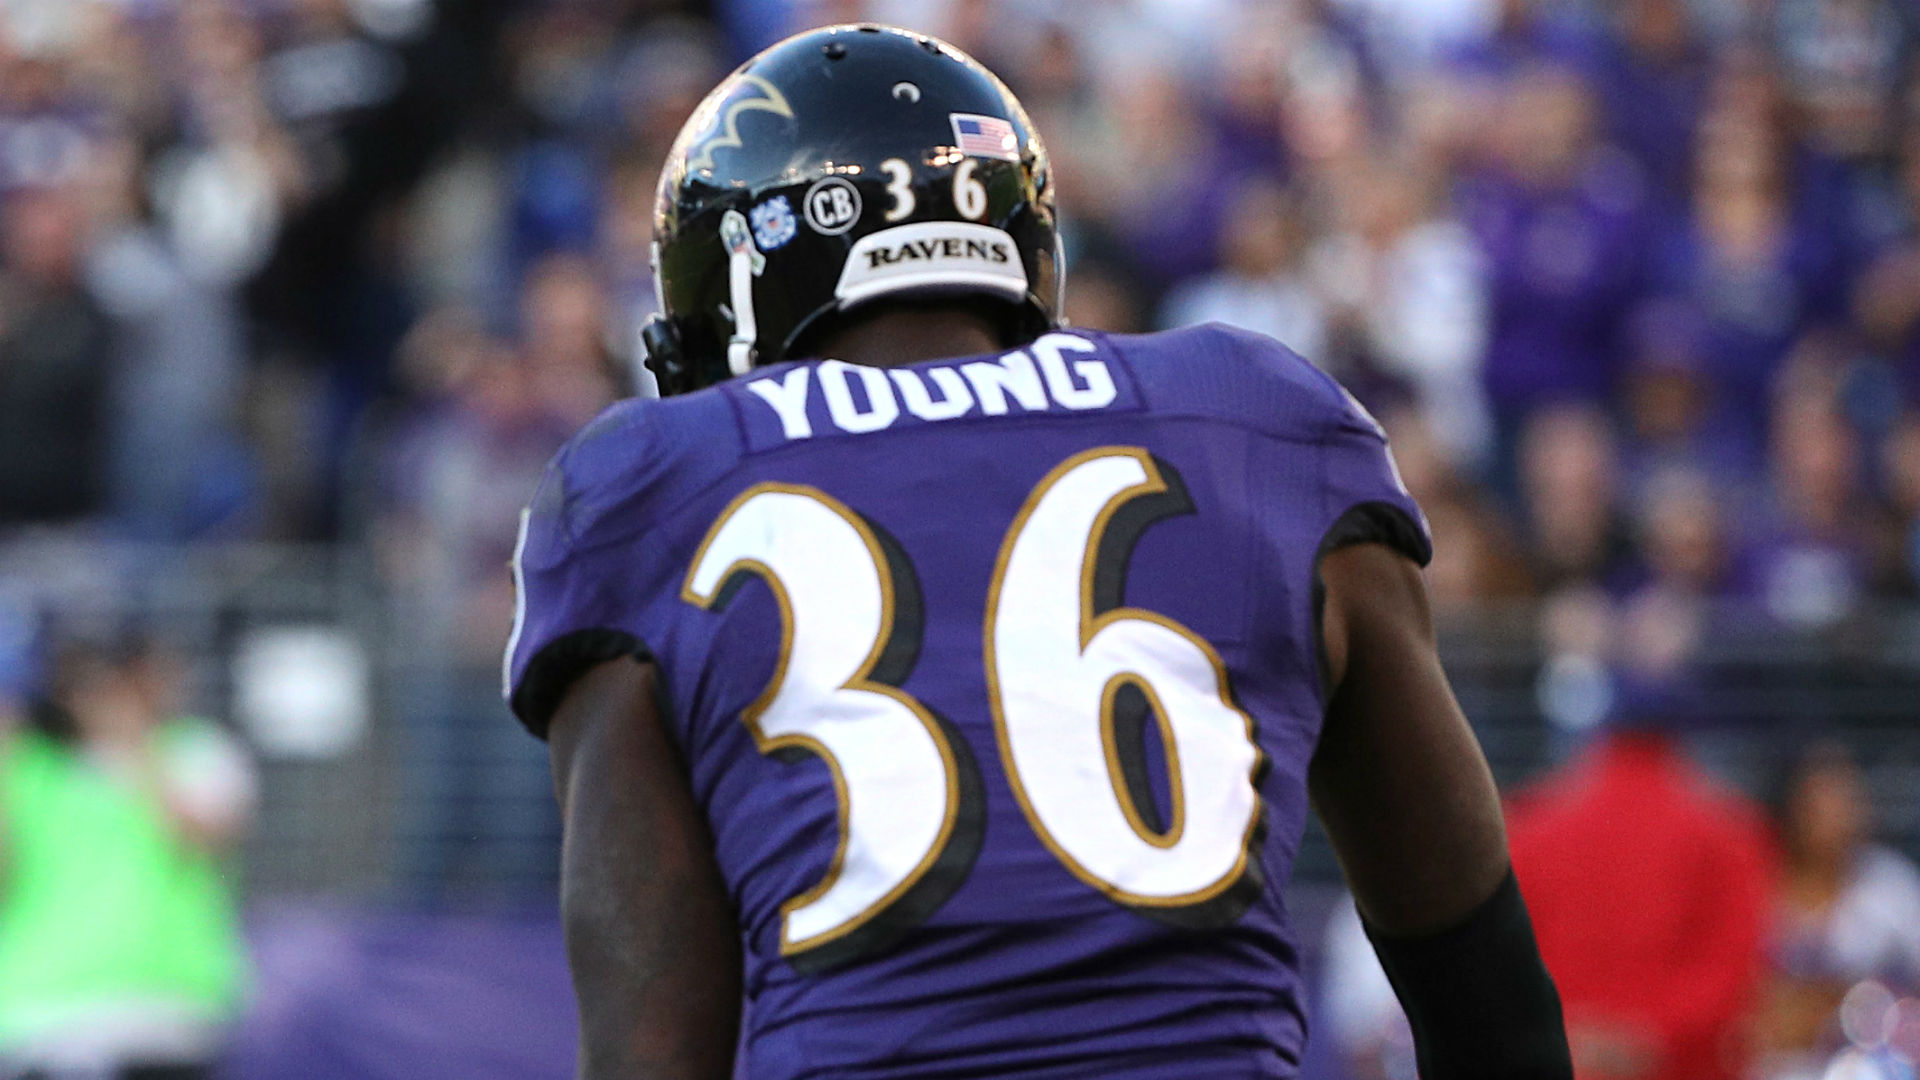 Ravens corner Young injures knee in practice